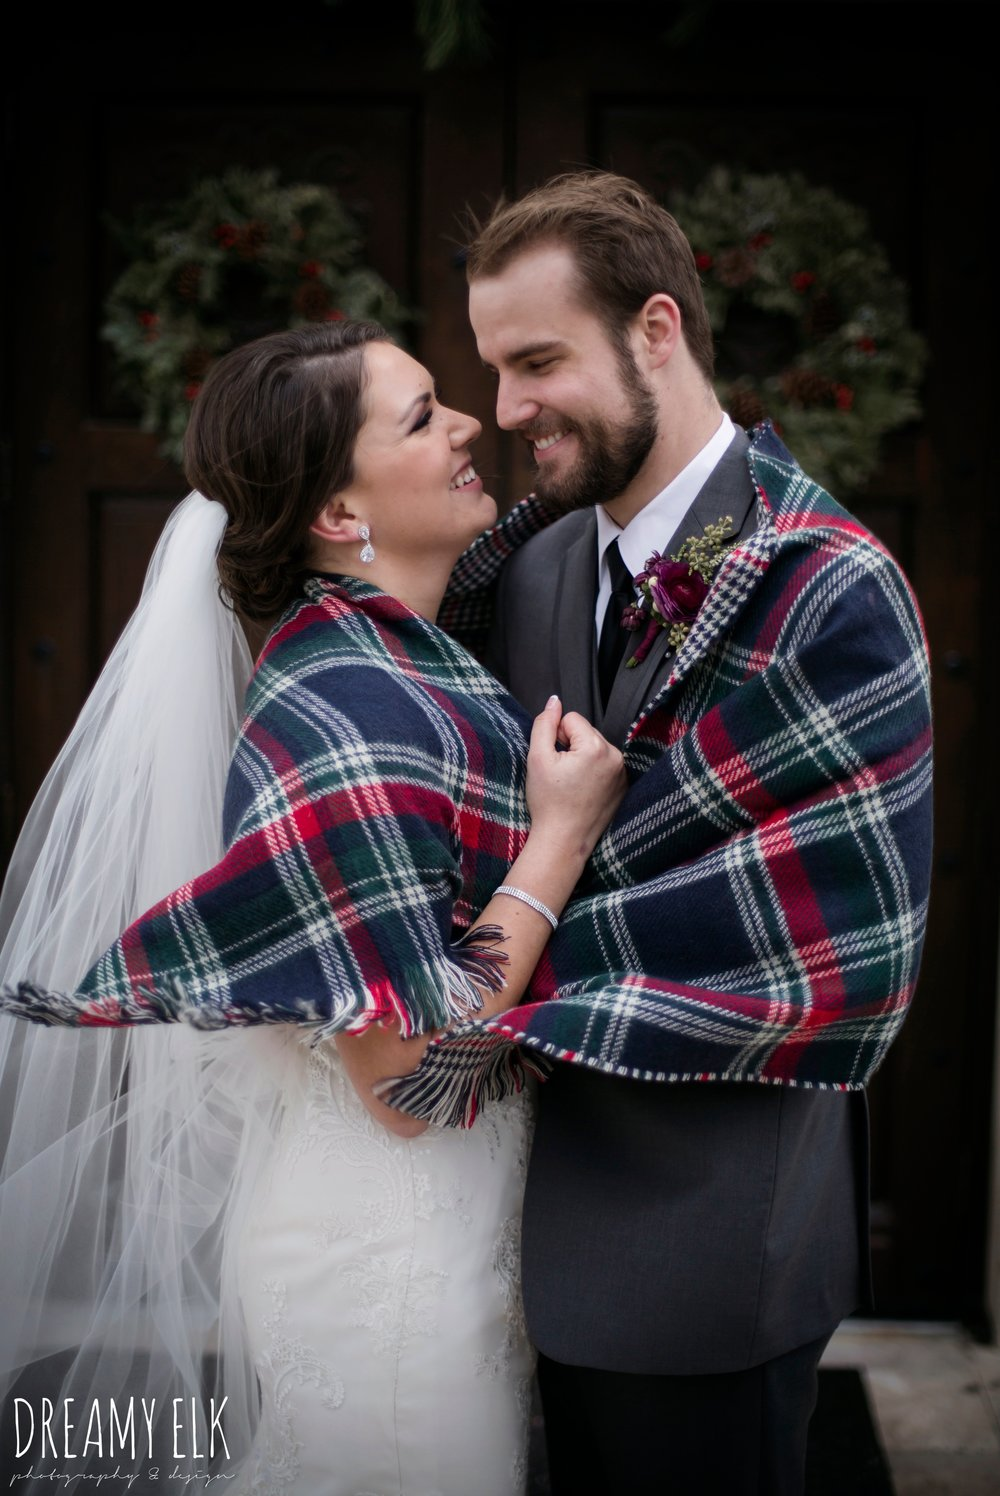 bride and groom wrapped up in a flannel blanket, casa blanca illusion lace wedding dress with button from lulus bridal, maroon december winter wedding, bella donna chapel, mckinney, texas {dreamy elk photography and design}